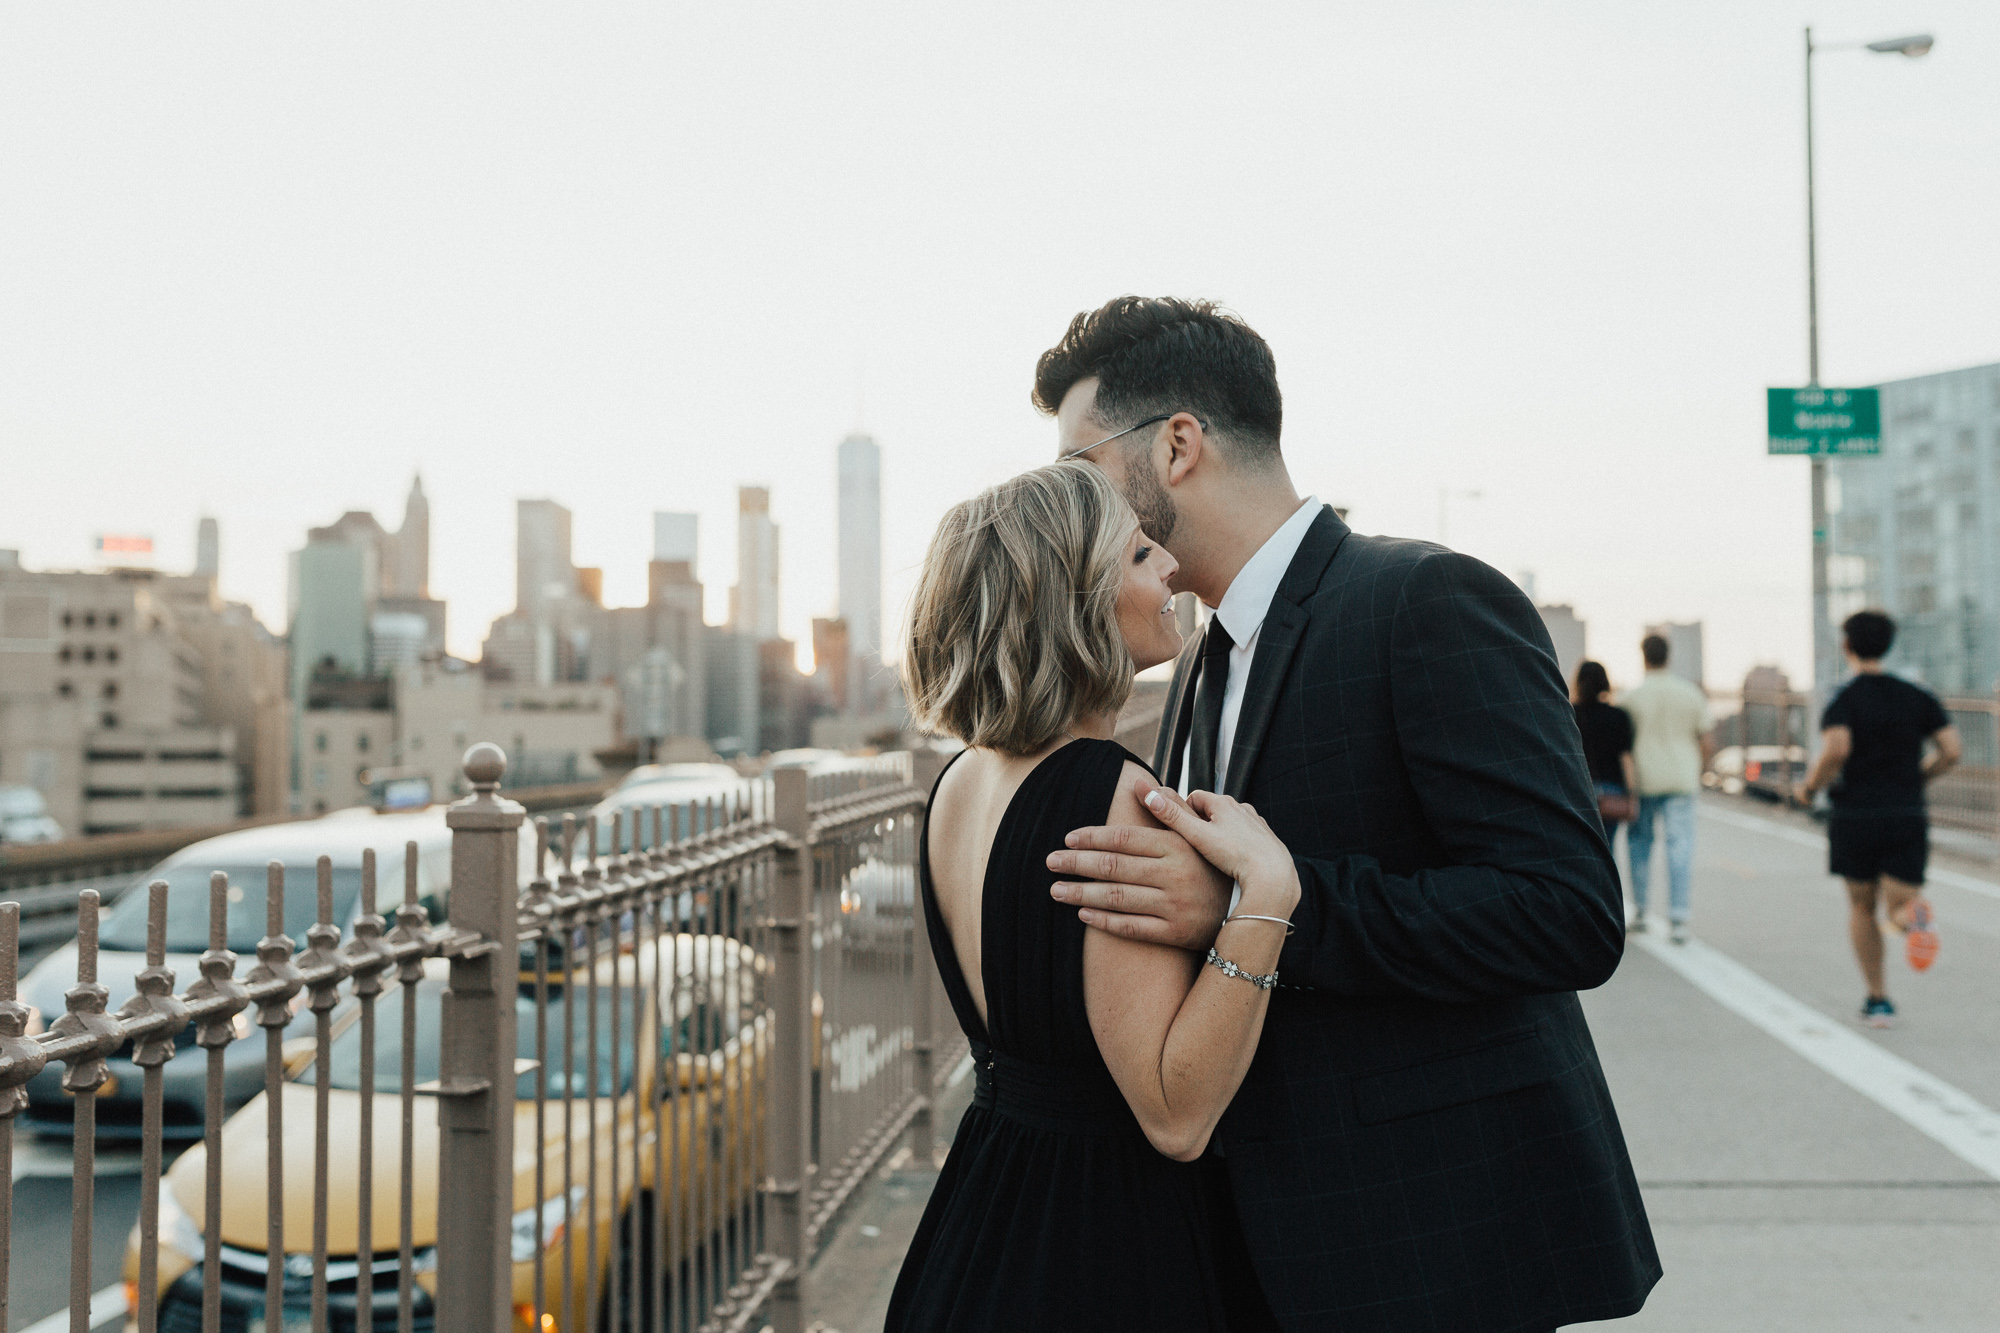 brooklyn_nyc_engagement_photography-69-of-83.jpg